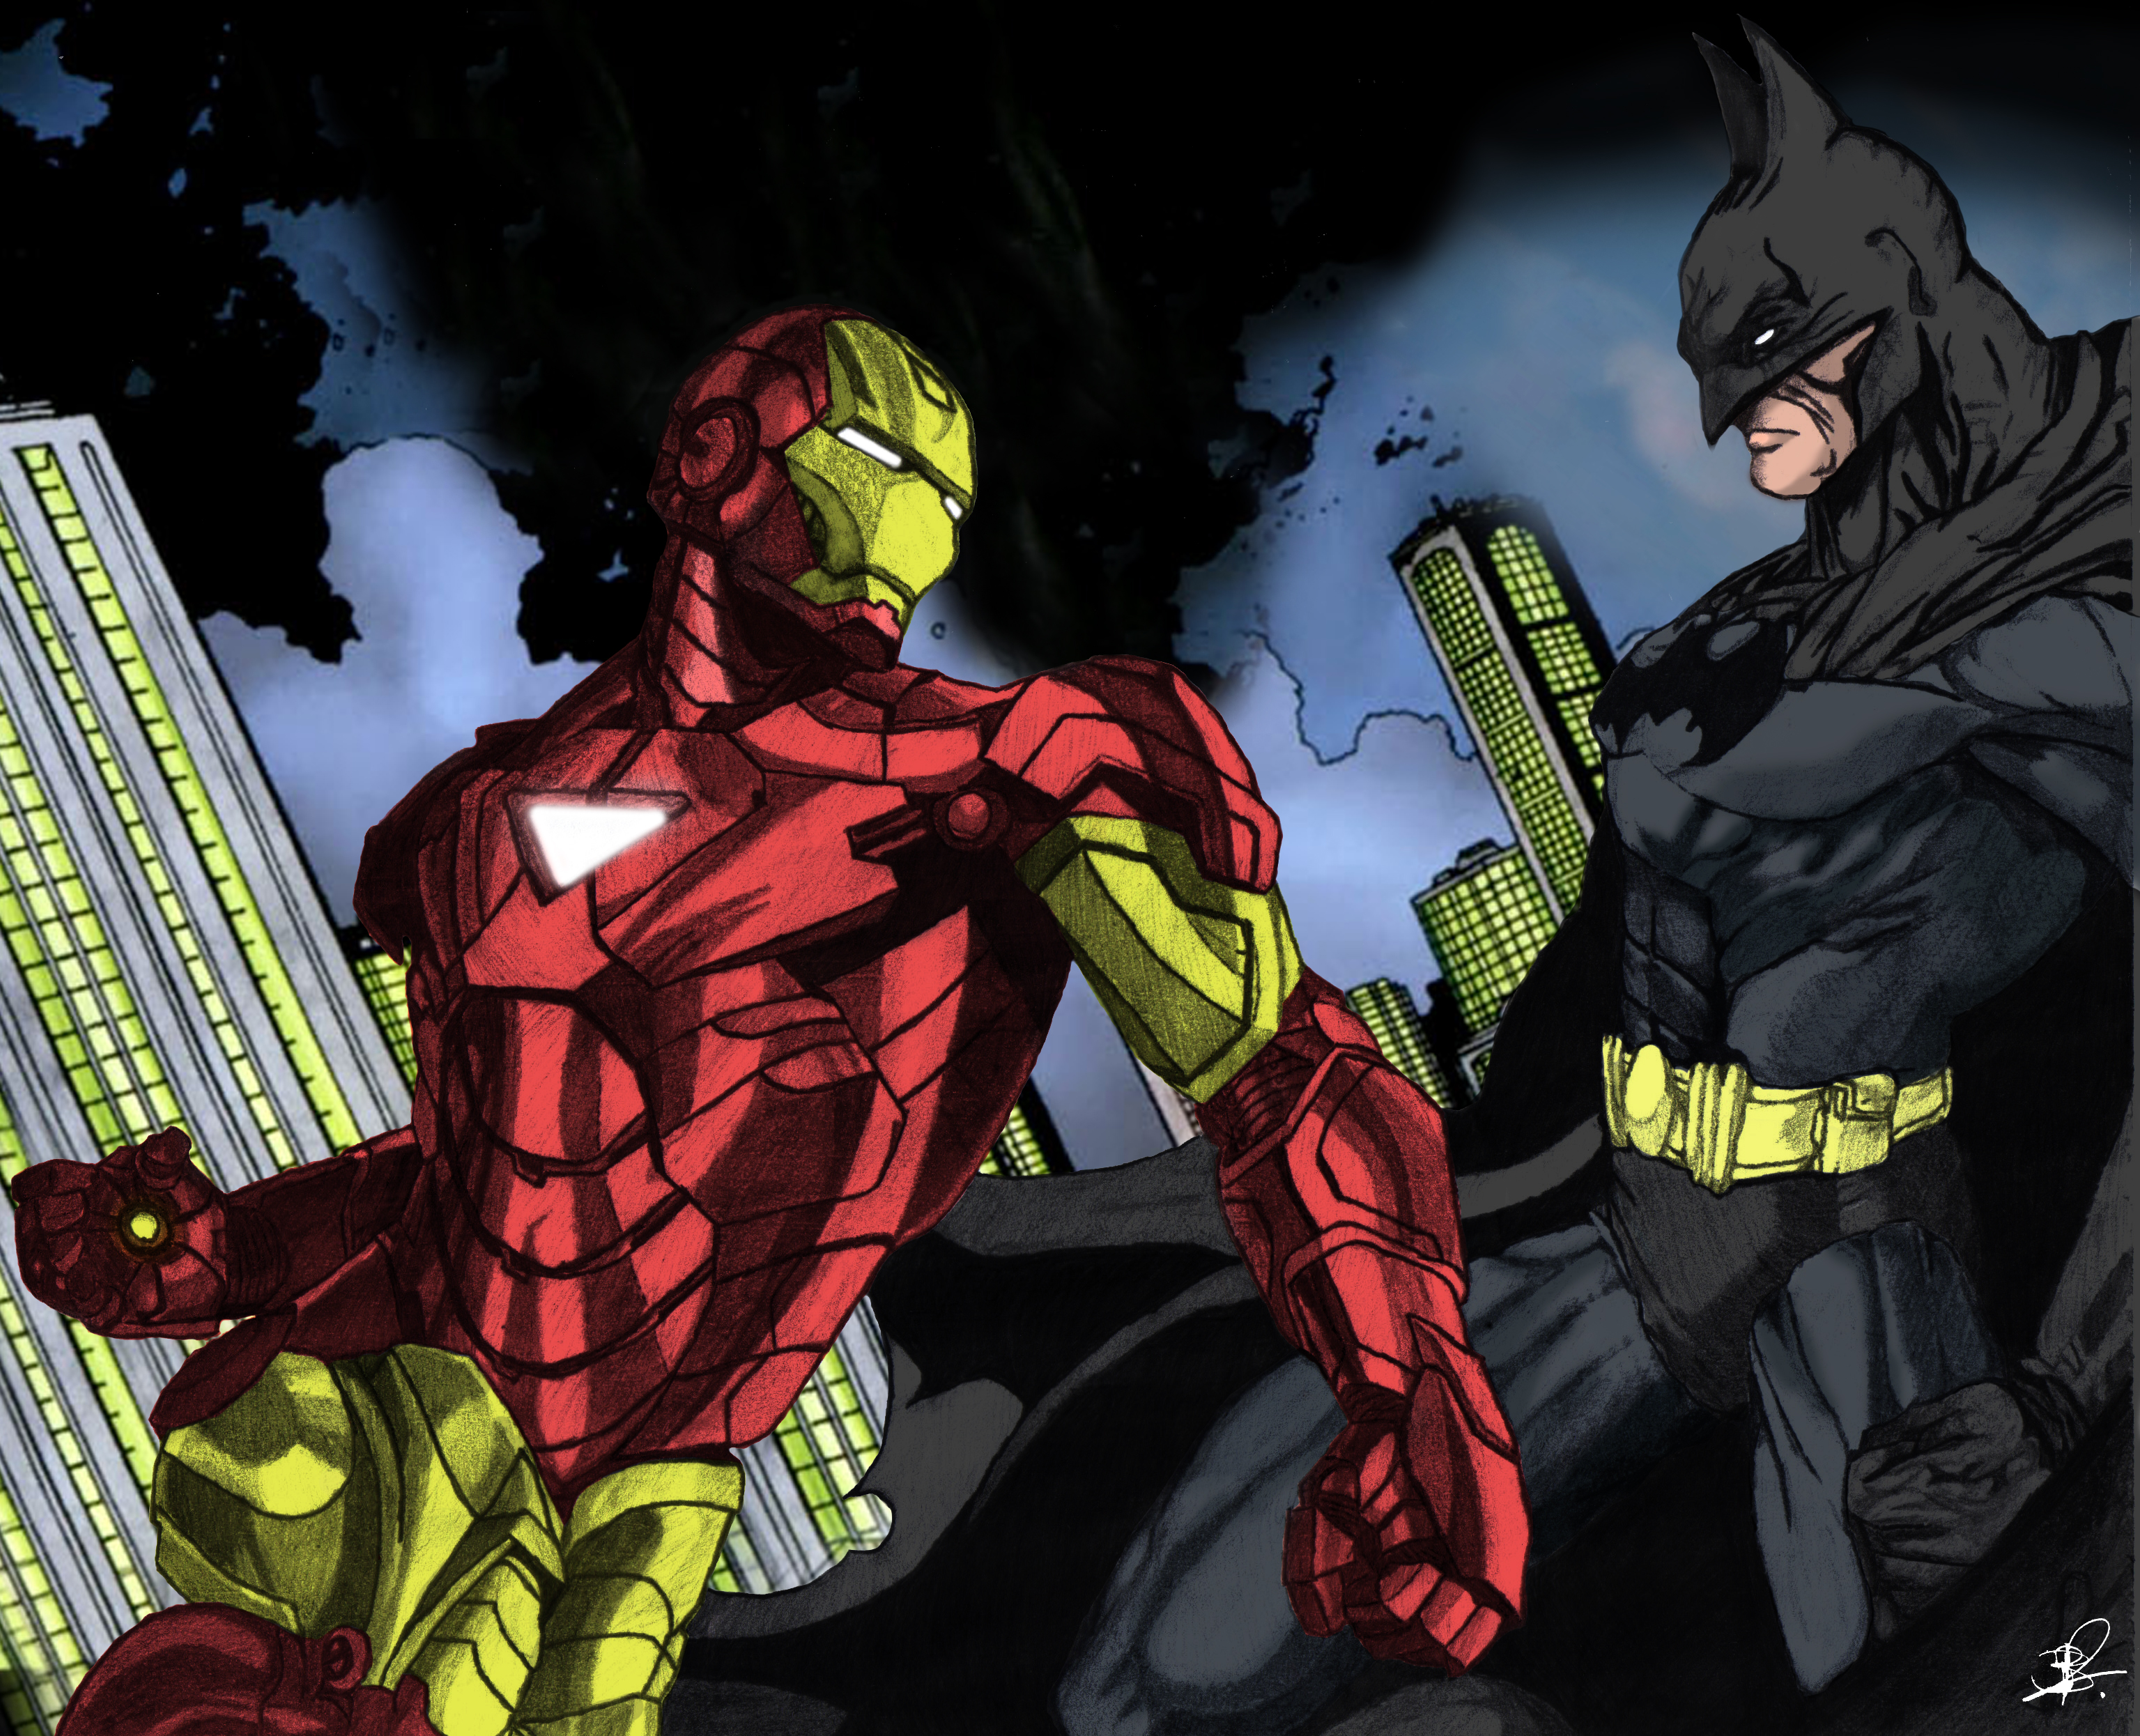 Ironman vs Batman by kelvin0gs08 on DeviantArt